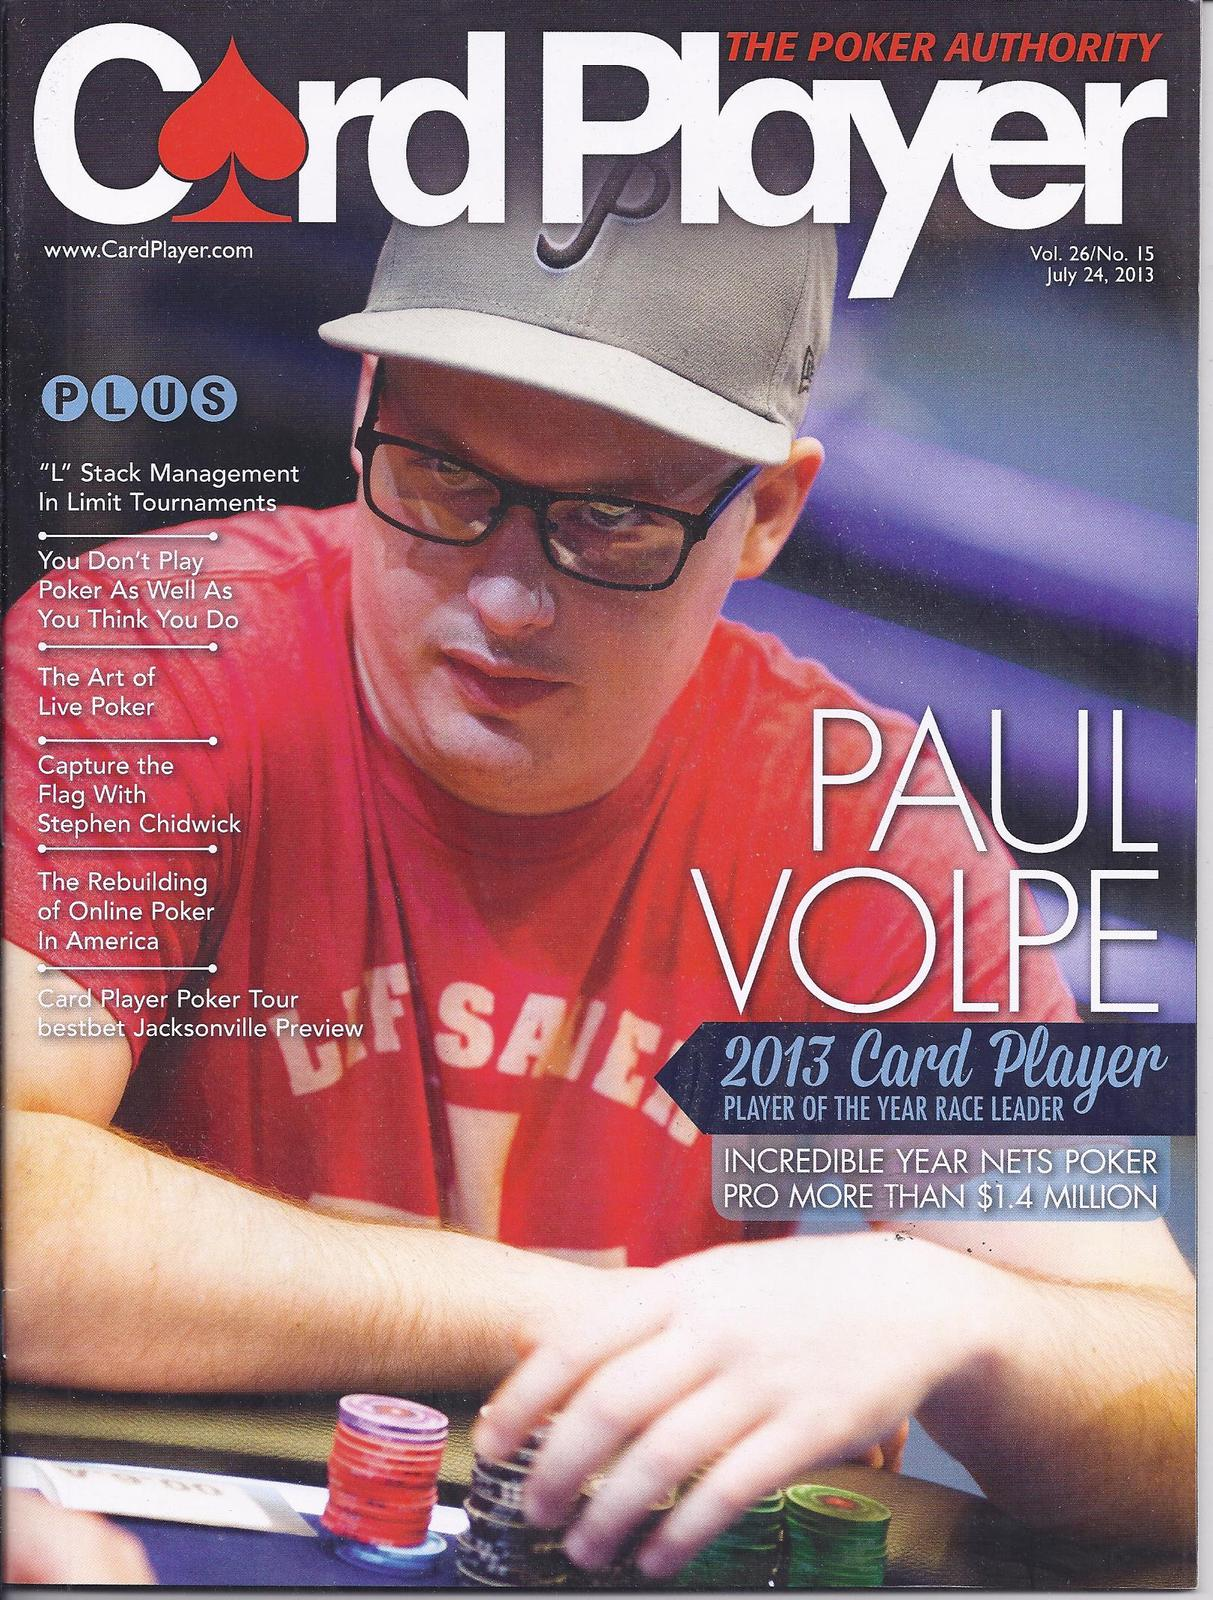 Primary image for PAUL VOLPE @ LAS VEGAS CARDPLAYER POKER JUL 2013